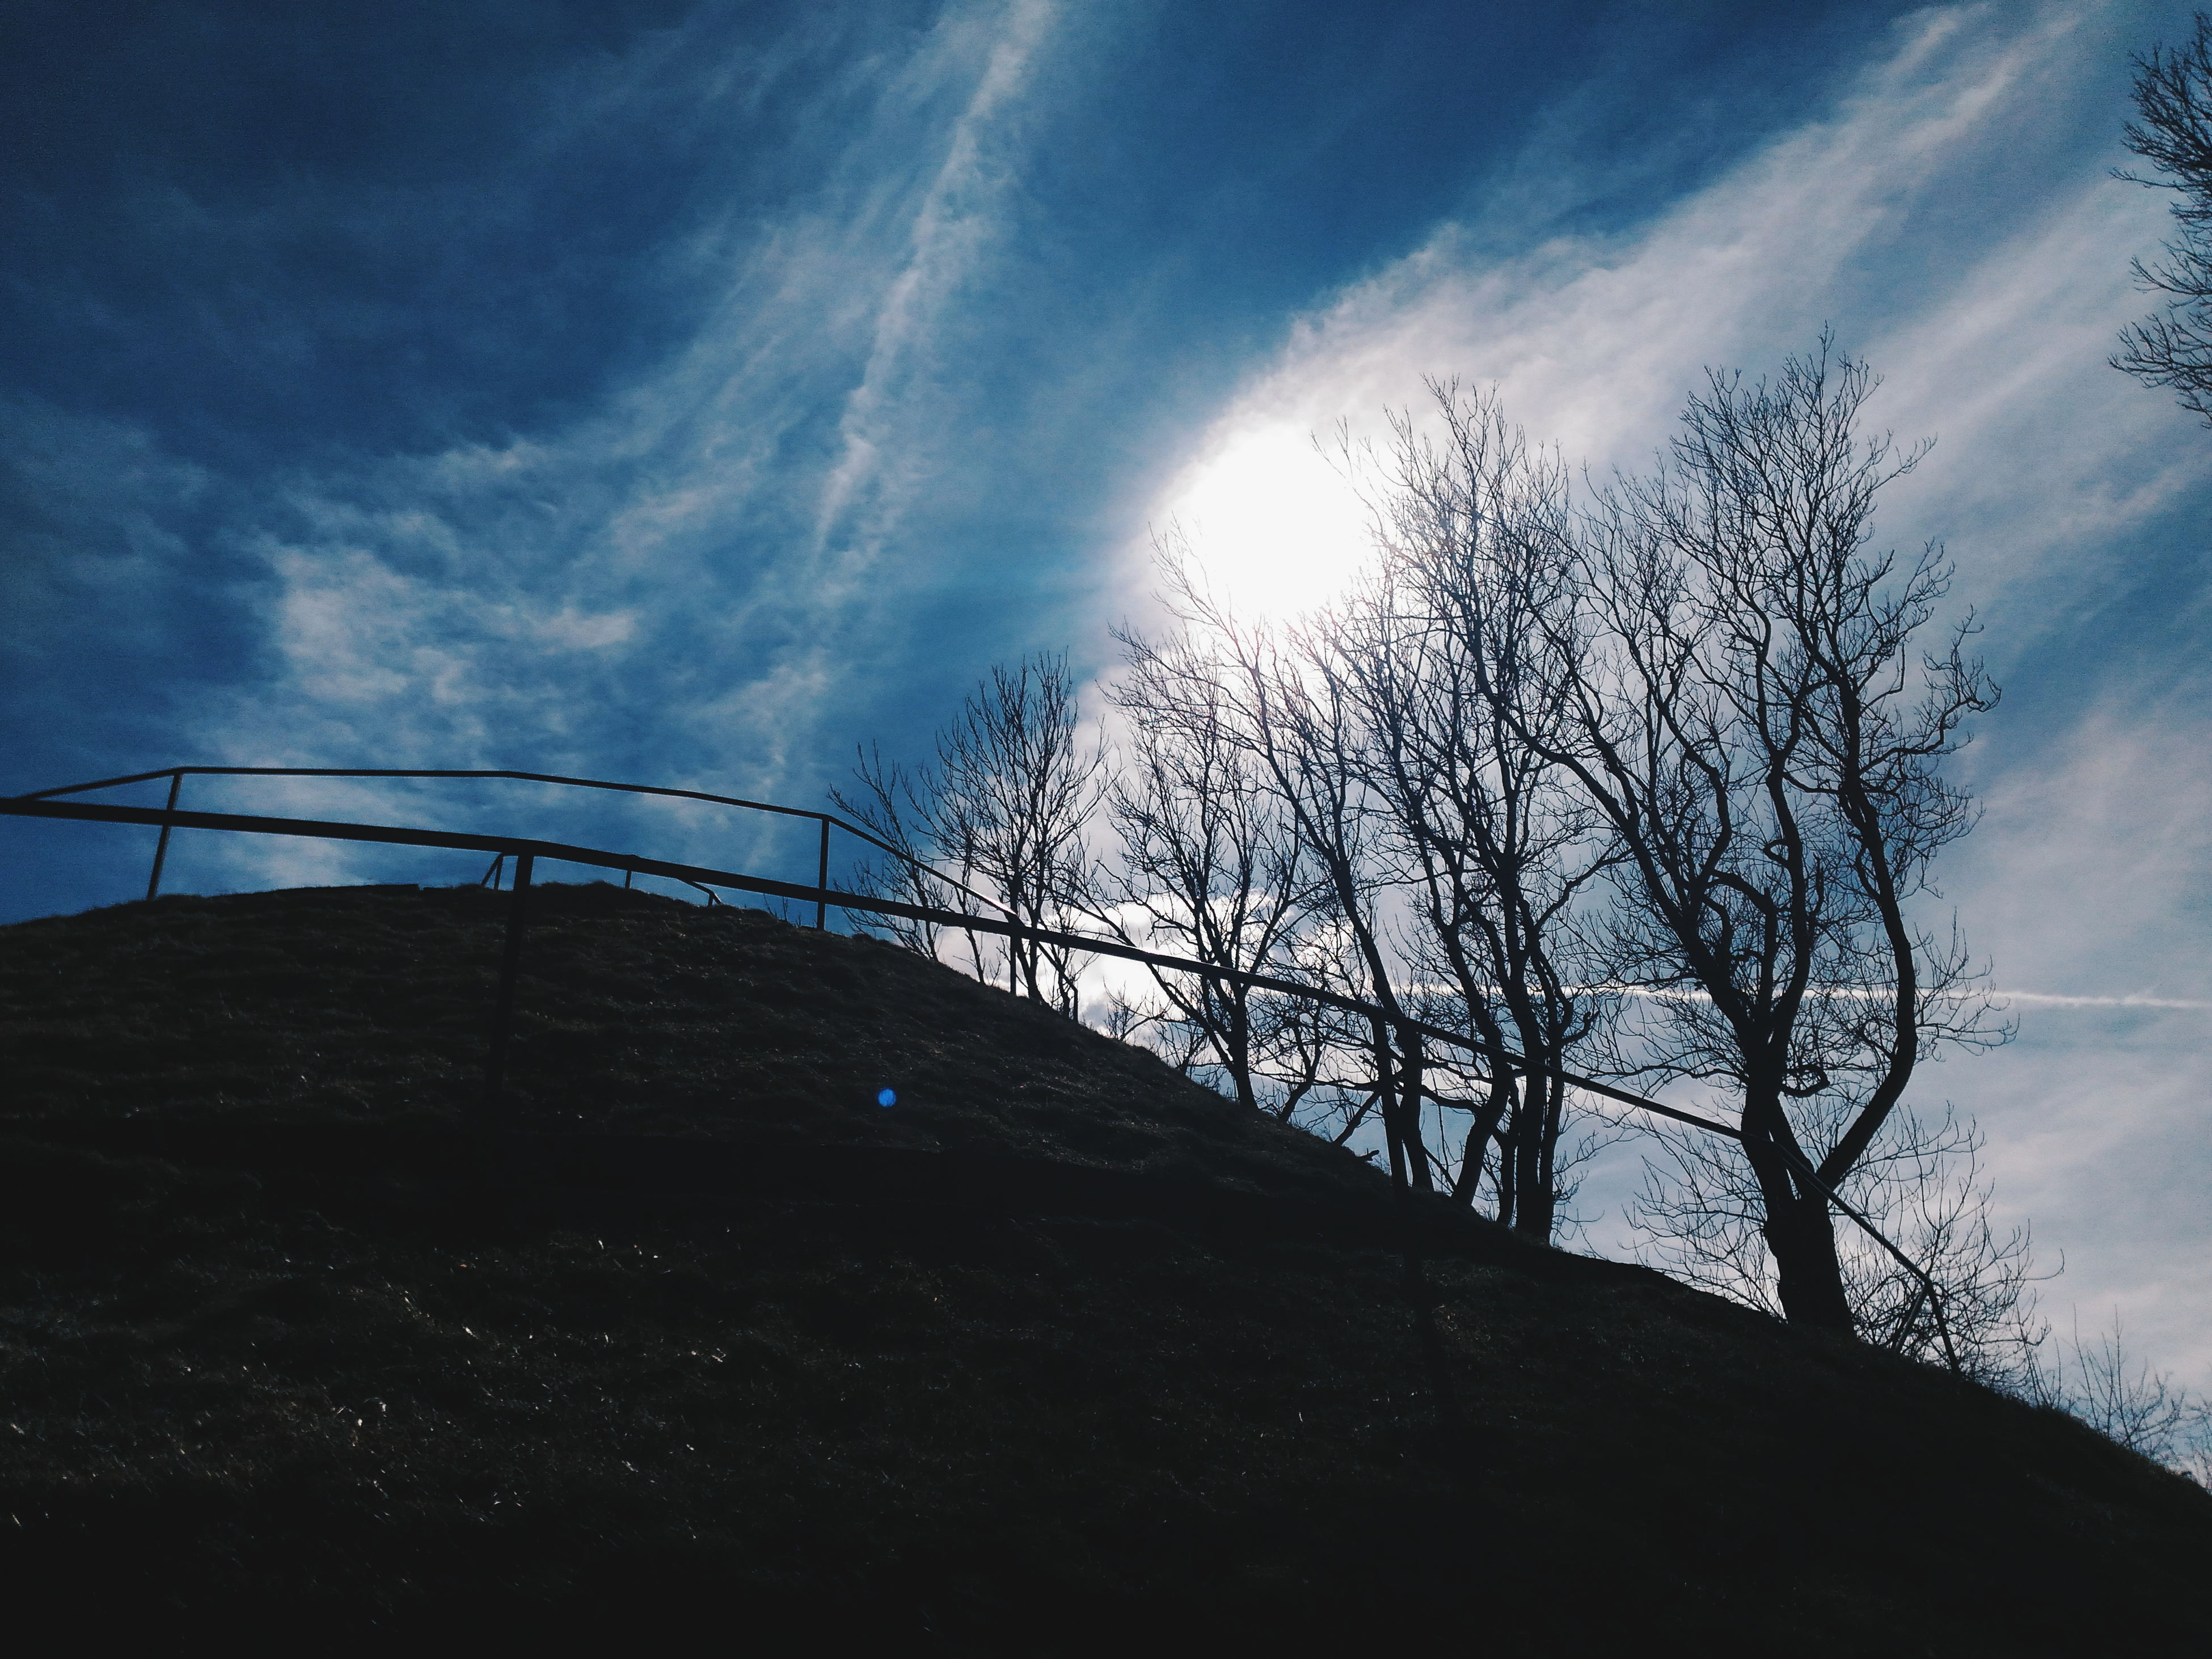 sky, sun, tree, sunlight, cloud - sky, silhouette, low angle view, tranquility, bare tree, sunbeam, cloud, nature, tranquil scene, lens flare, beauty in nature, branch, scenics, blue, no people, built structure